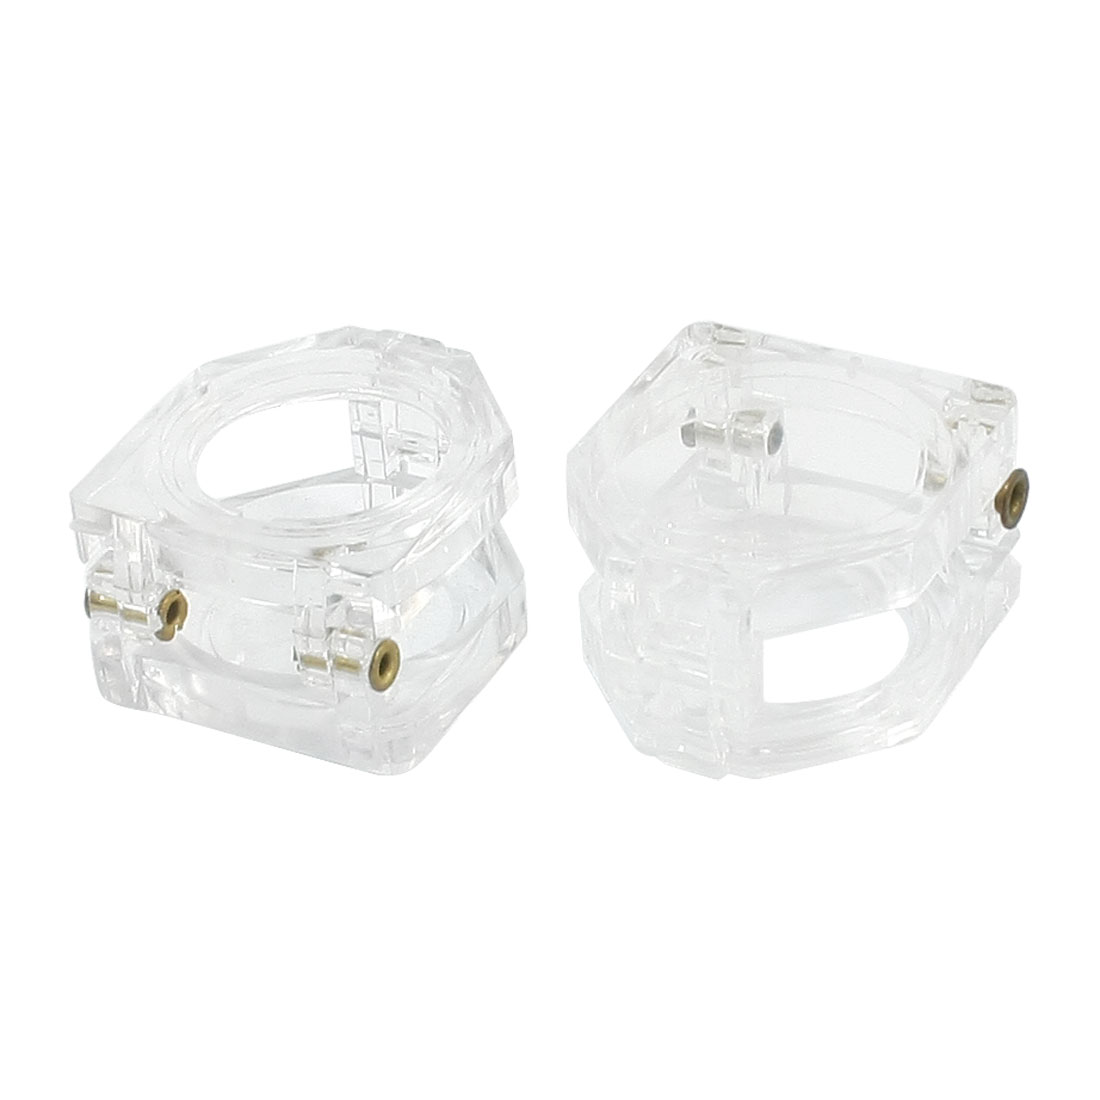 2Pcs Clear 22mm Plastic Cylinder Push Button Switch Protective Guard Protector Cover for LAY37 LAY7 LA39